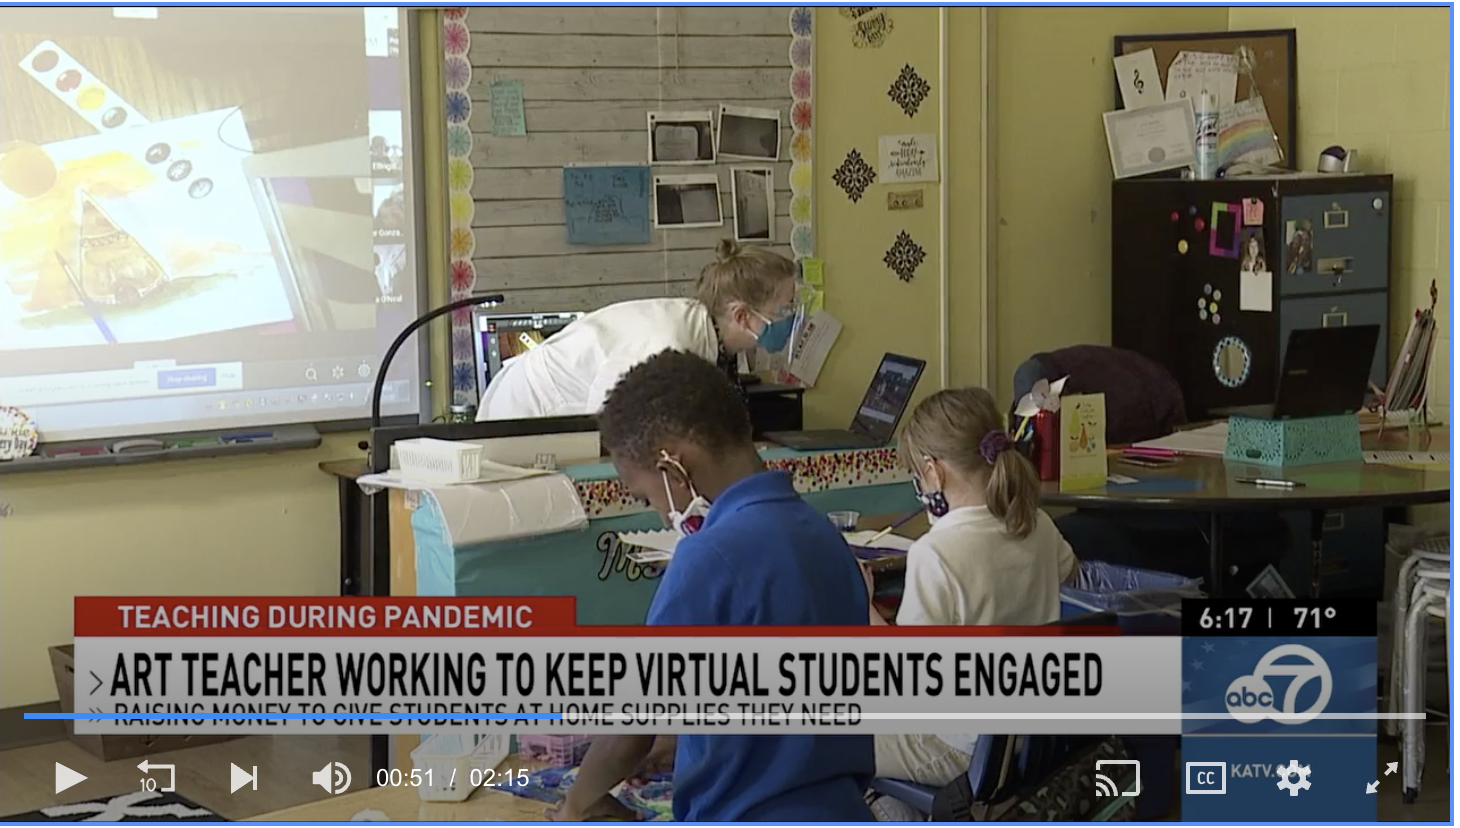 KATV: Art teachers get creative with hands-on assignments during remote learning